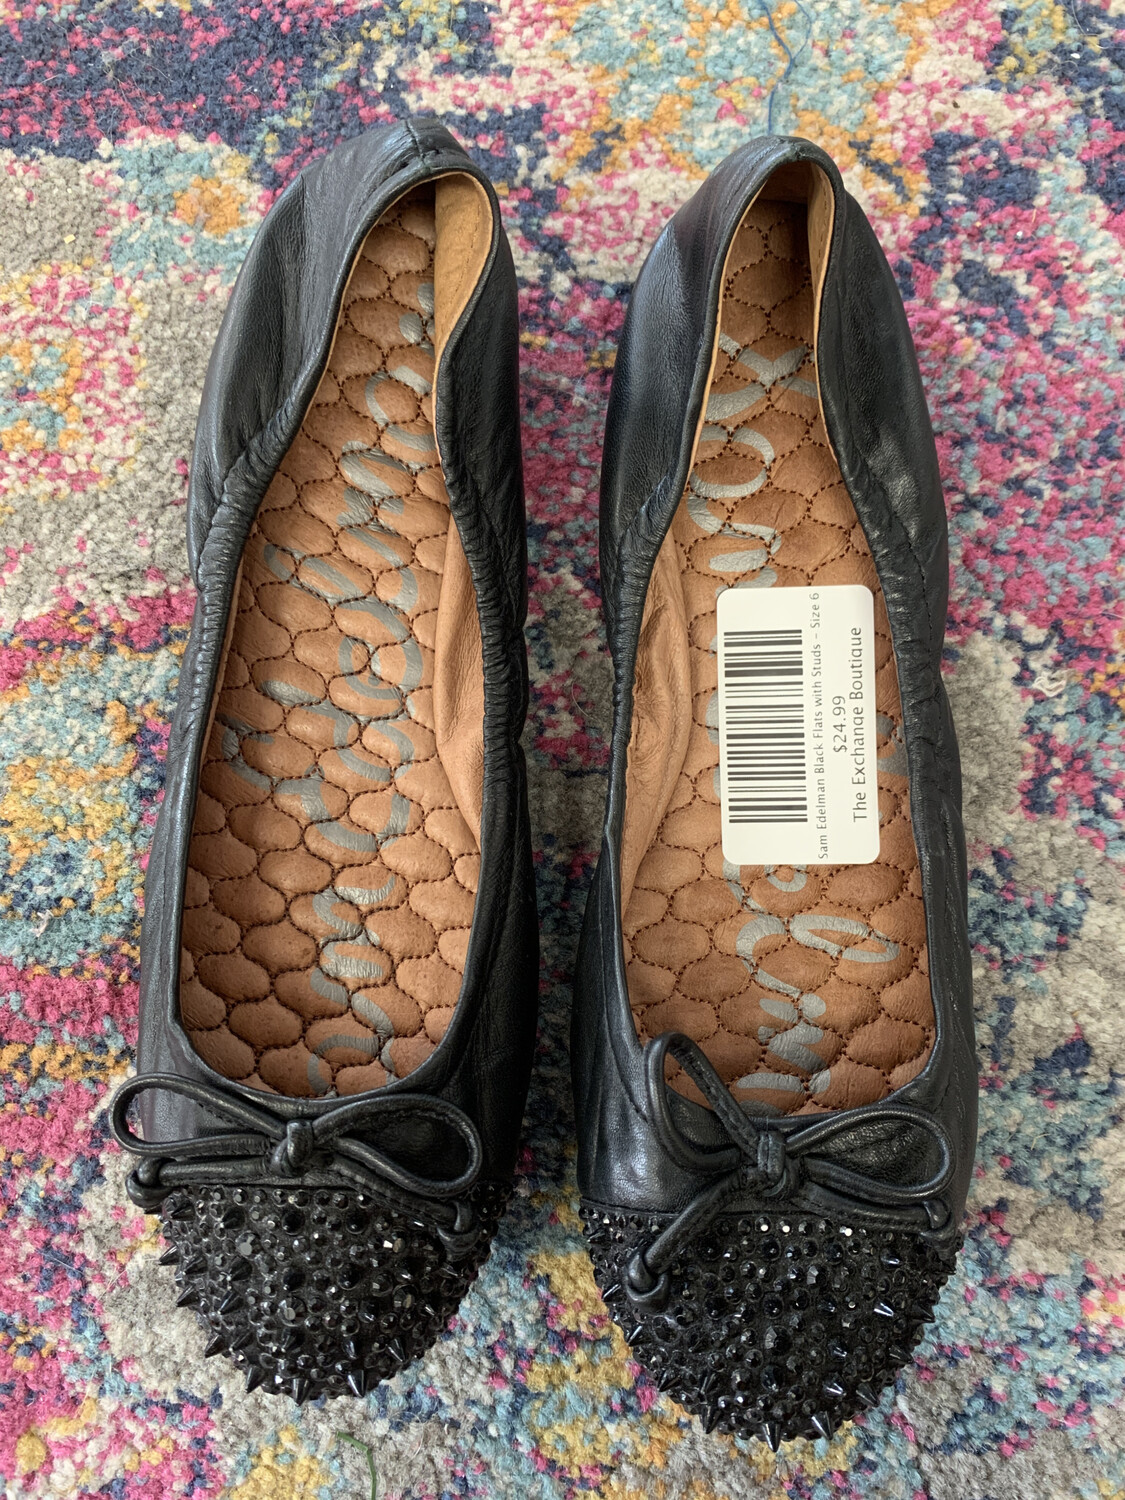 Sam Edelman Black Flats with Studs - Size 6